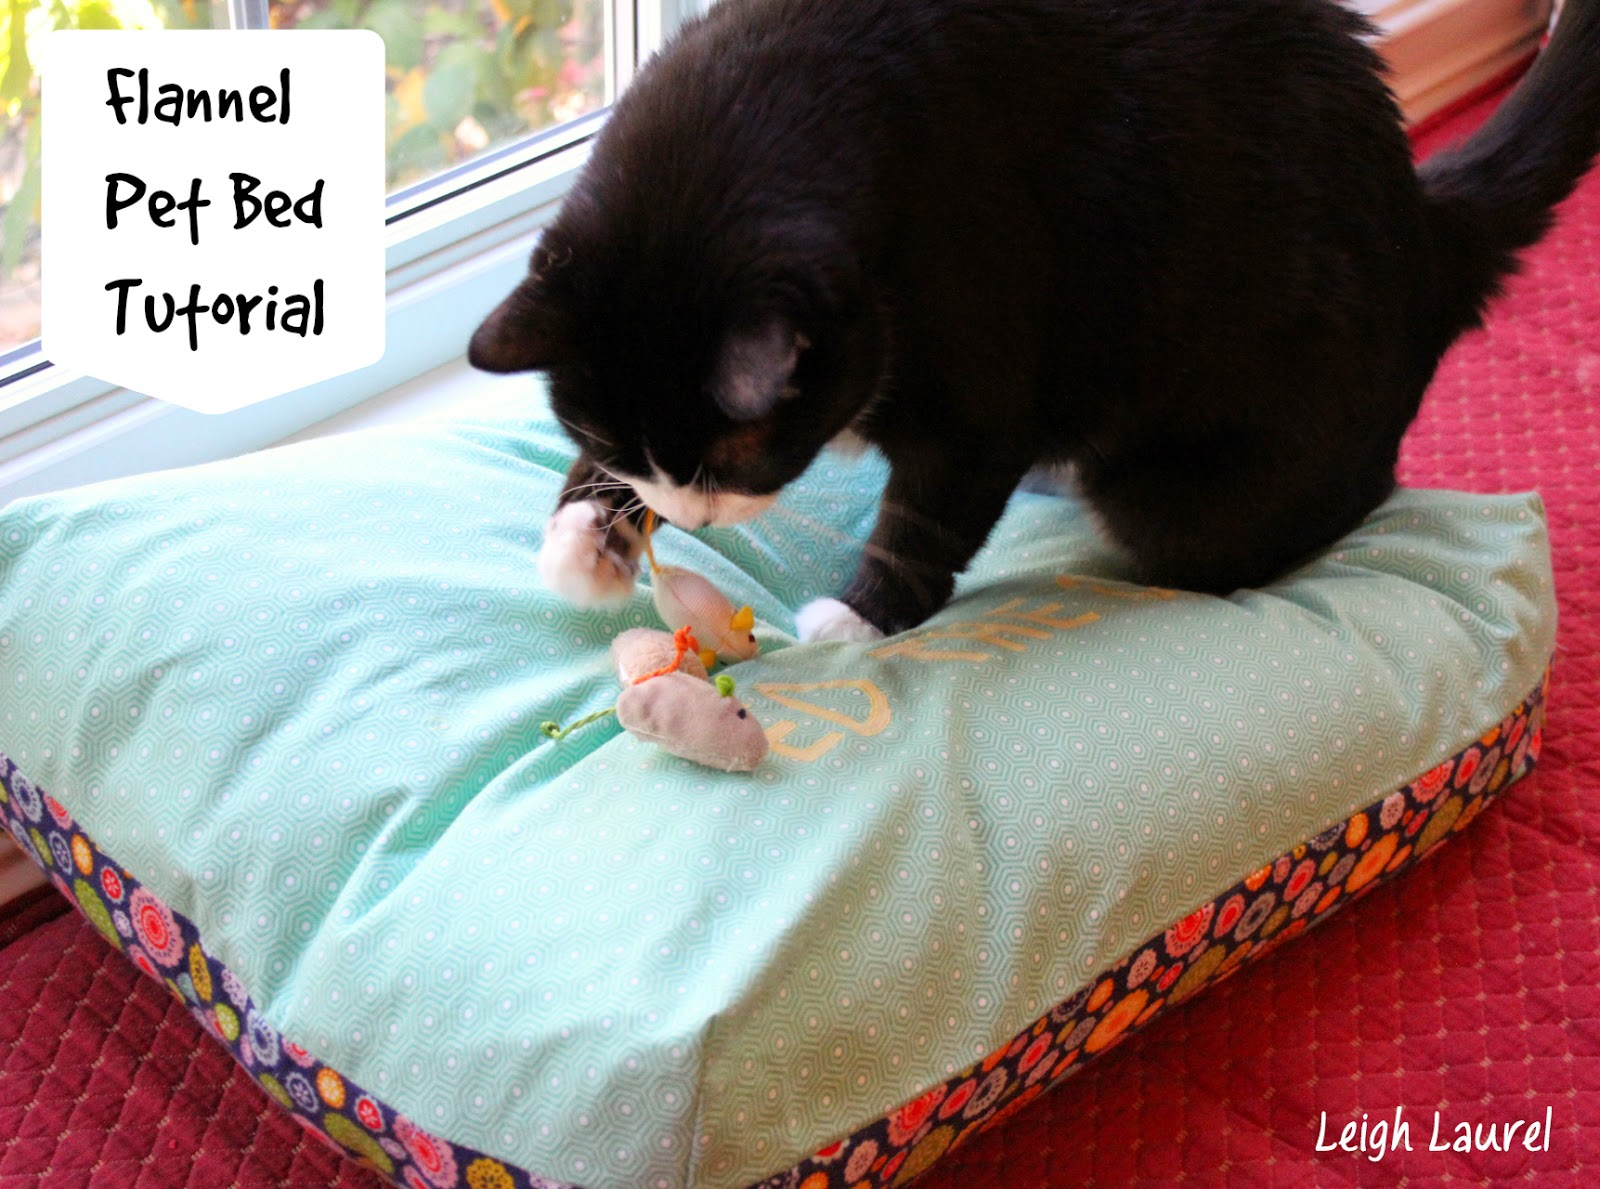 http://www.leighlaurelstudios.com/my-blog/2014/10/flannel-pet-bed.html